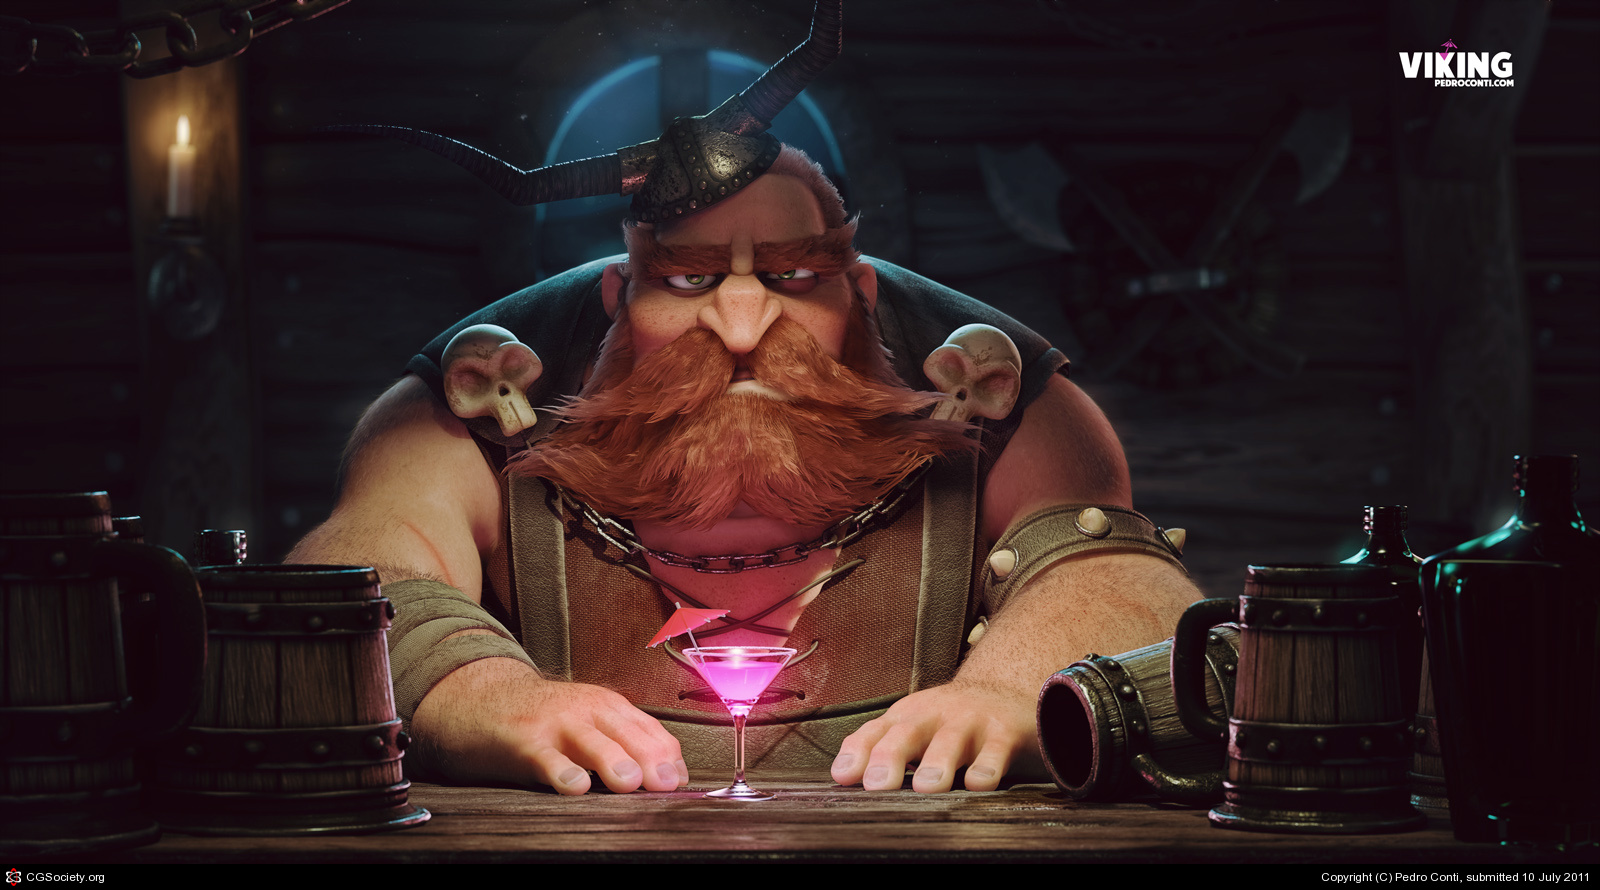 3d-3dmax-zbrush-vray-mental_ray-photoshop-after_effects-viking-Pedro-Conti